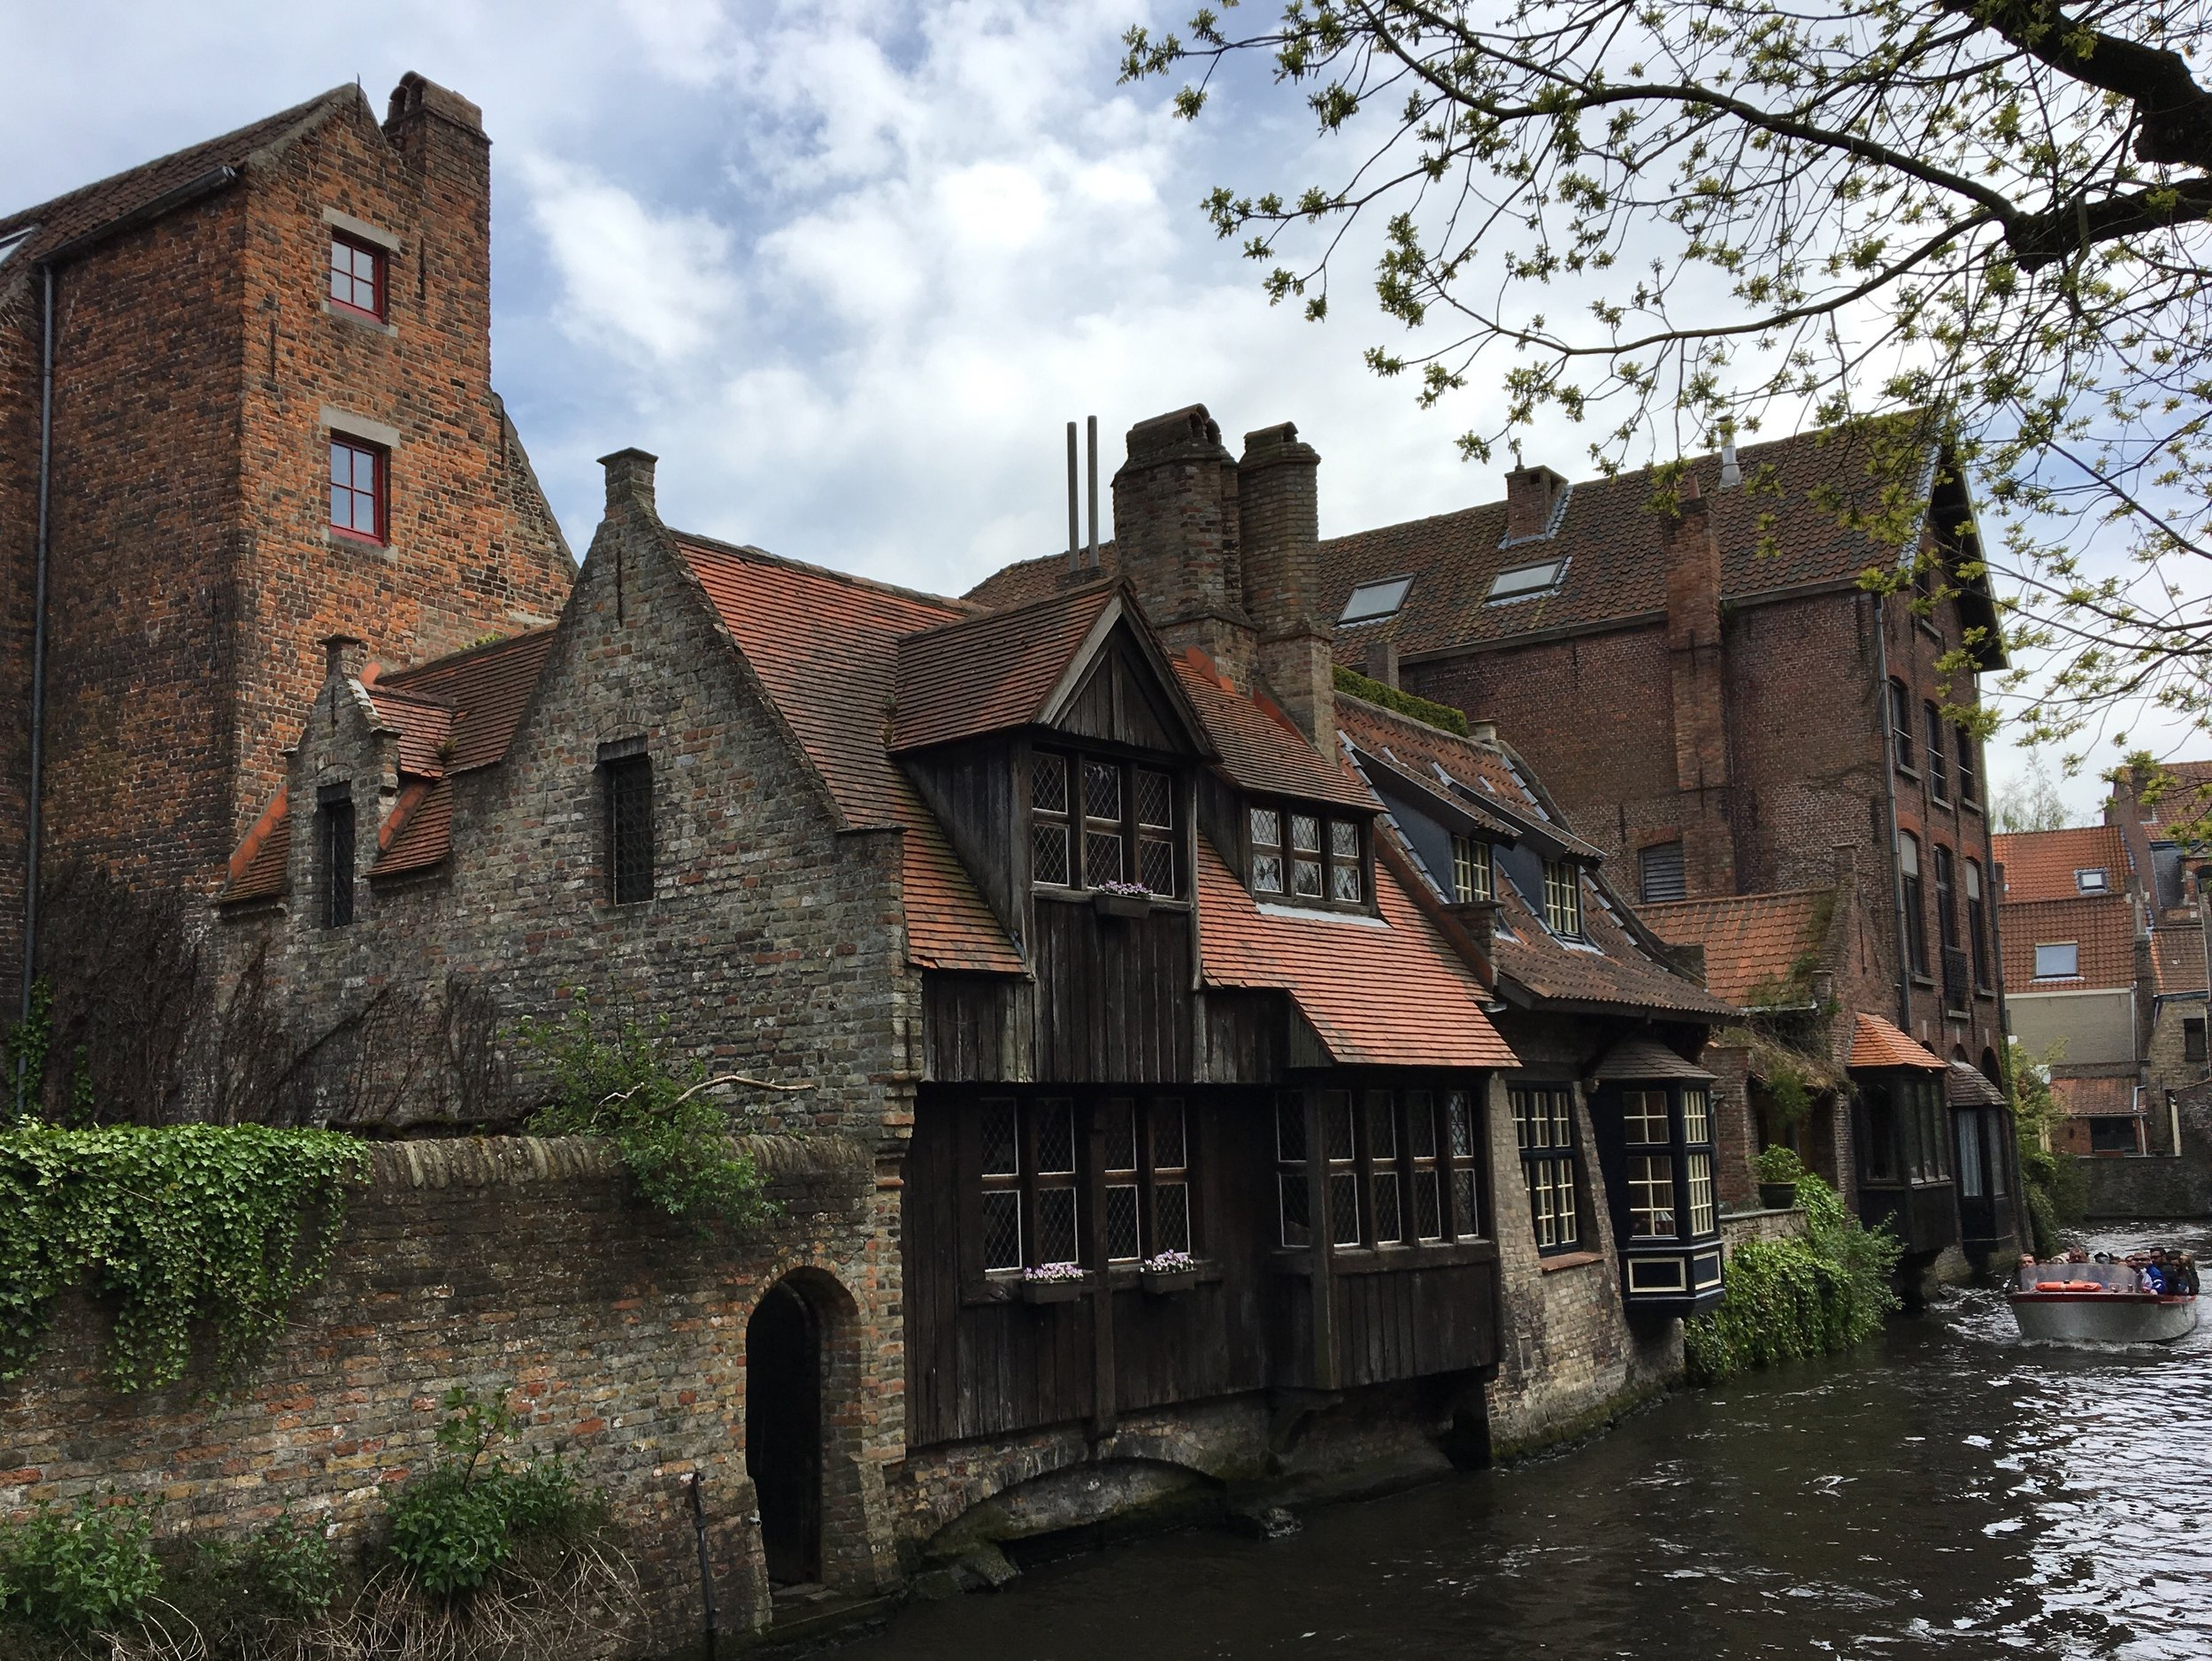 Canal Side Medieval Architecture of Bruges